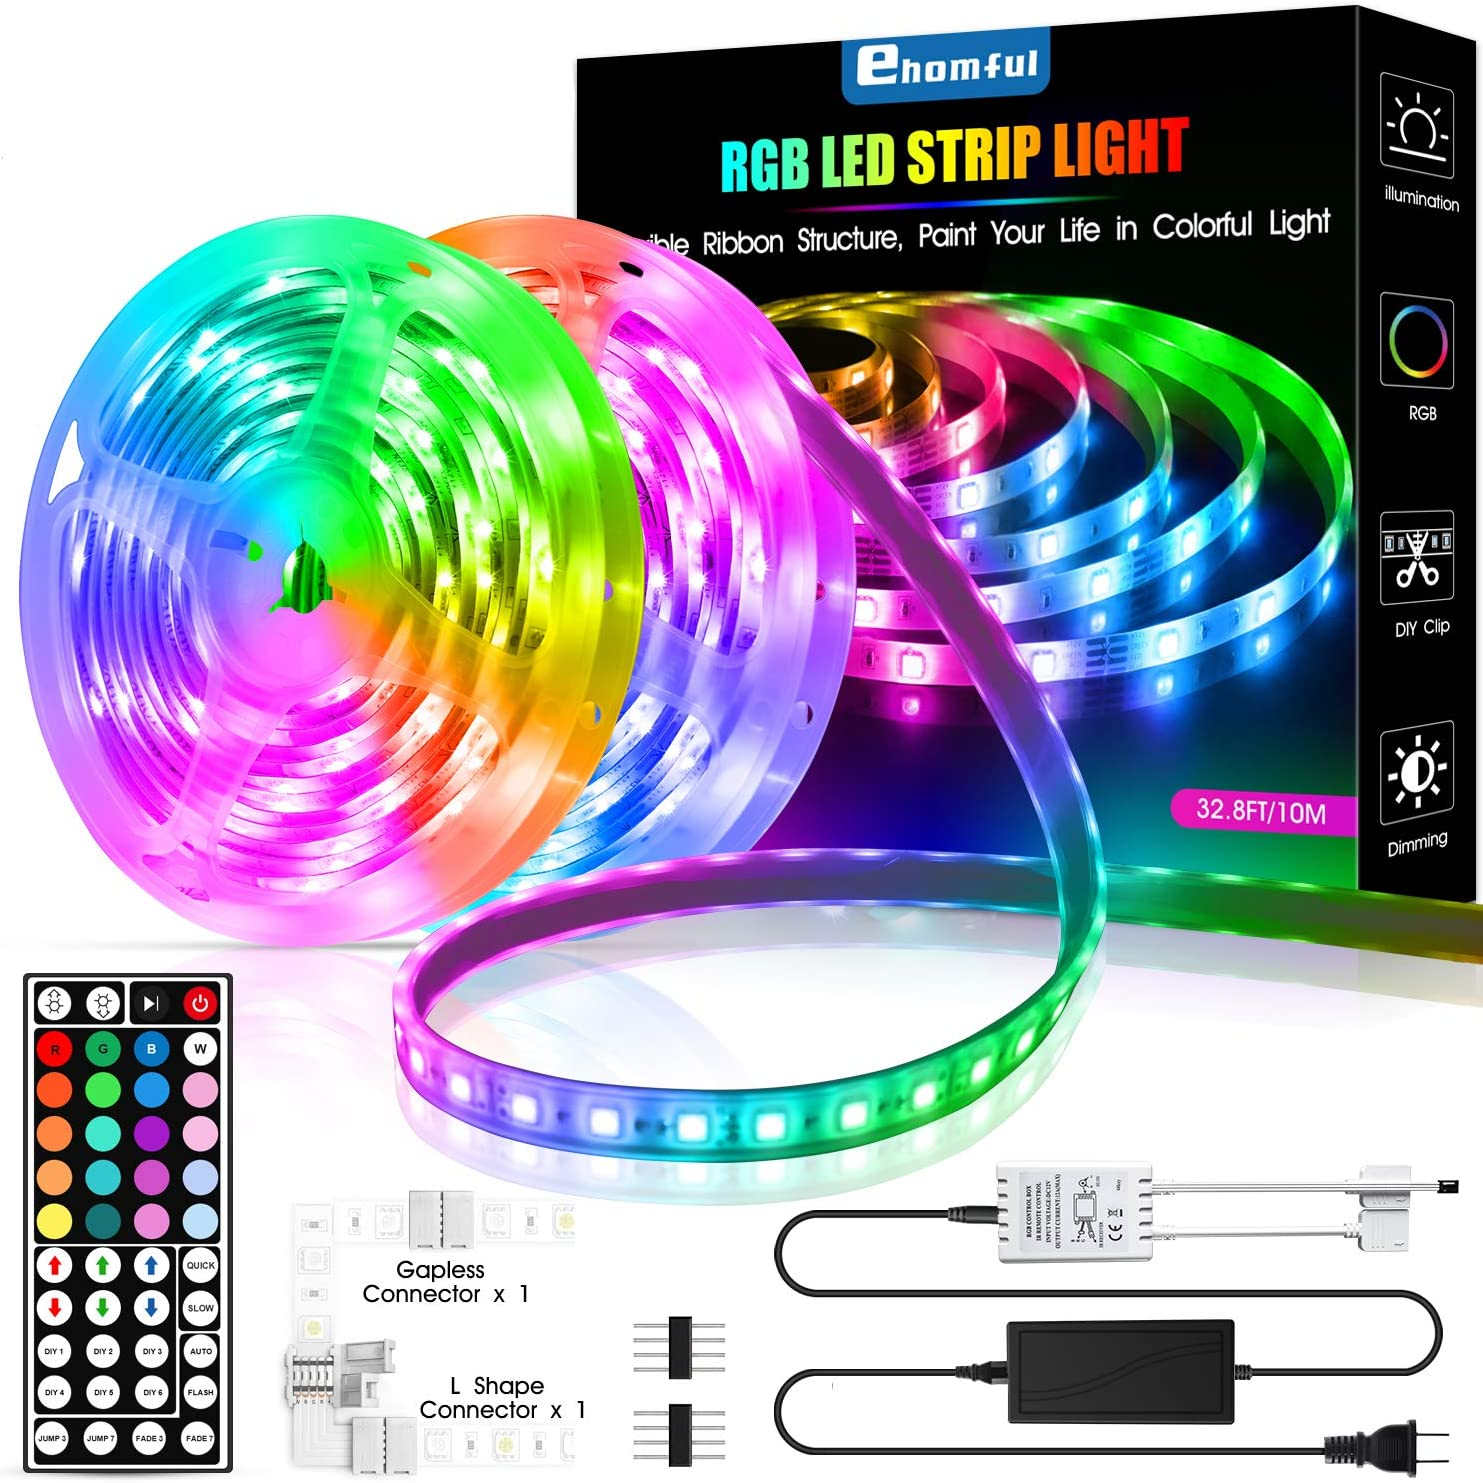 Amazon Com Led Strip Lights 32 8 Feet Ehomful Color Changing 44 Keys Remote Control Led Lights For Bedroom Room Kitchen And Party Decorations Home Improvement